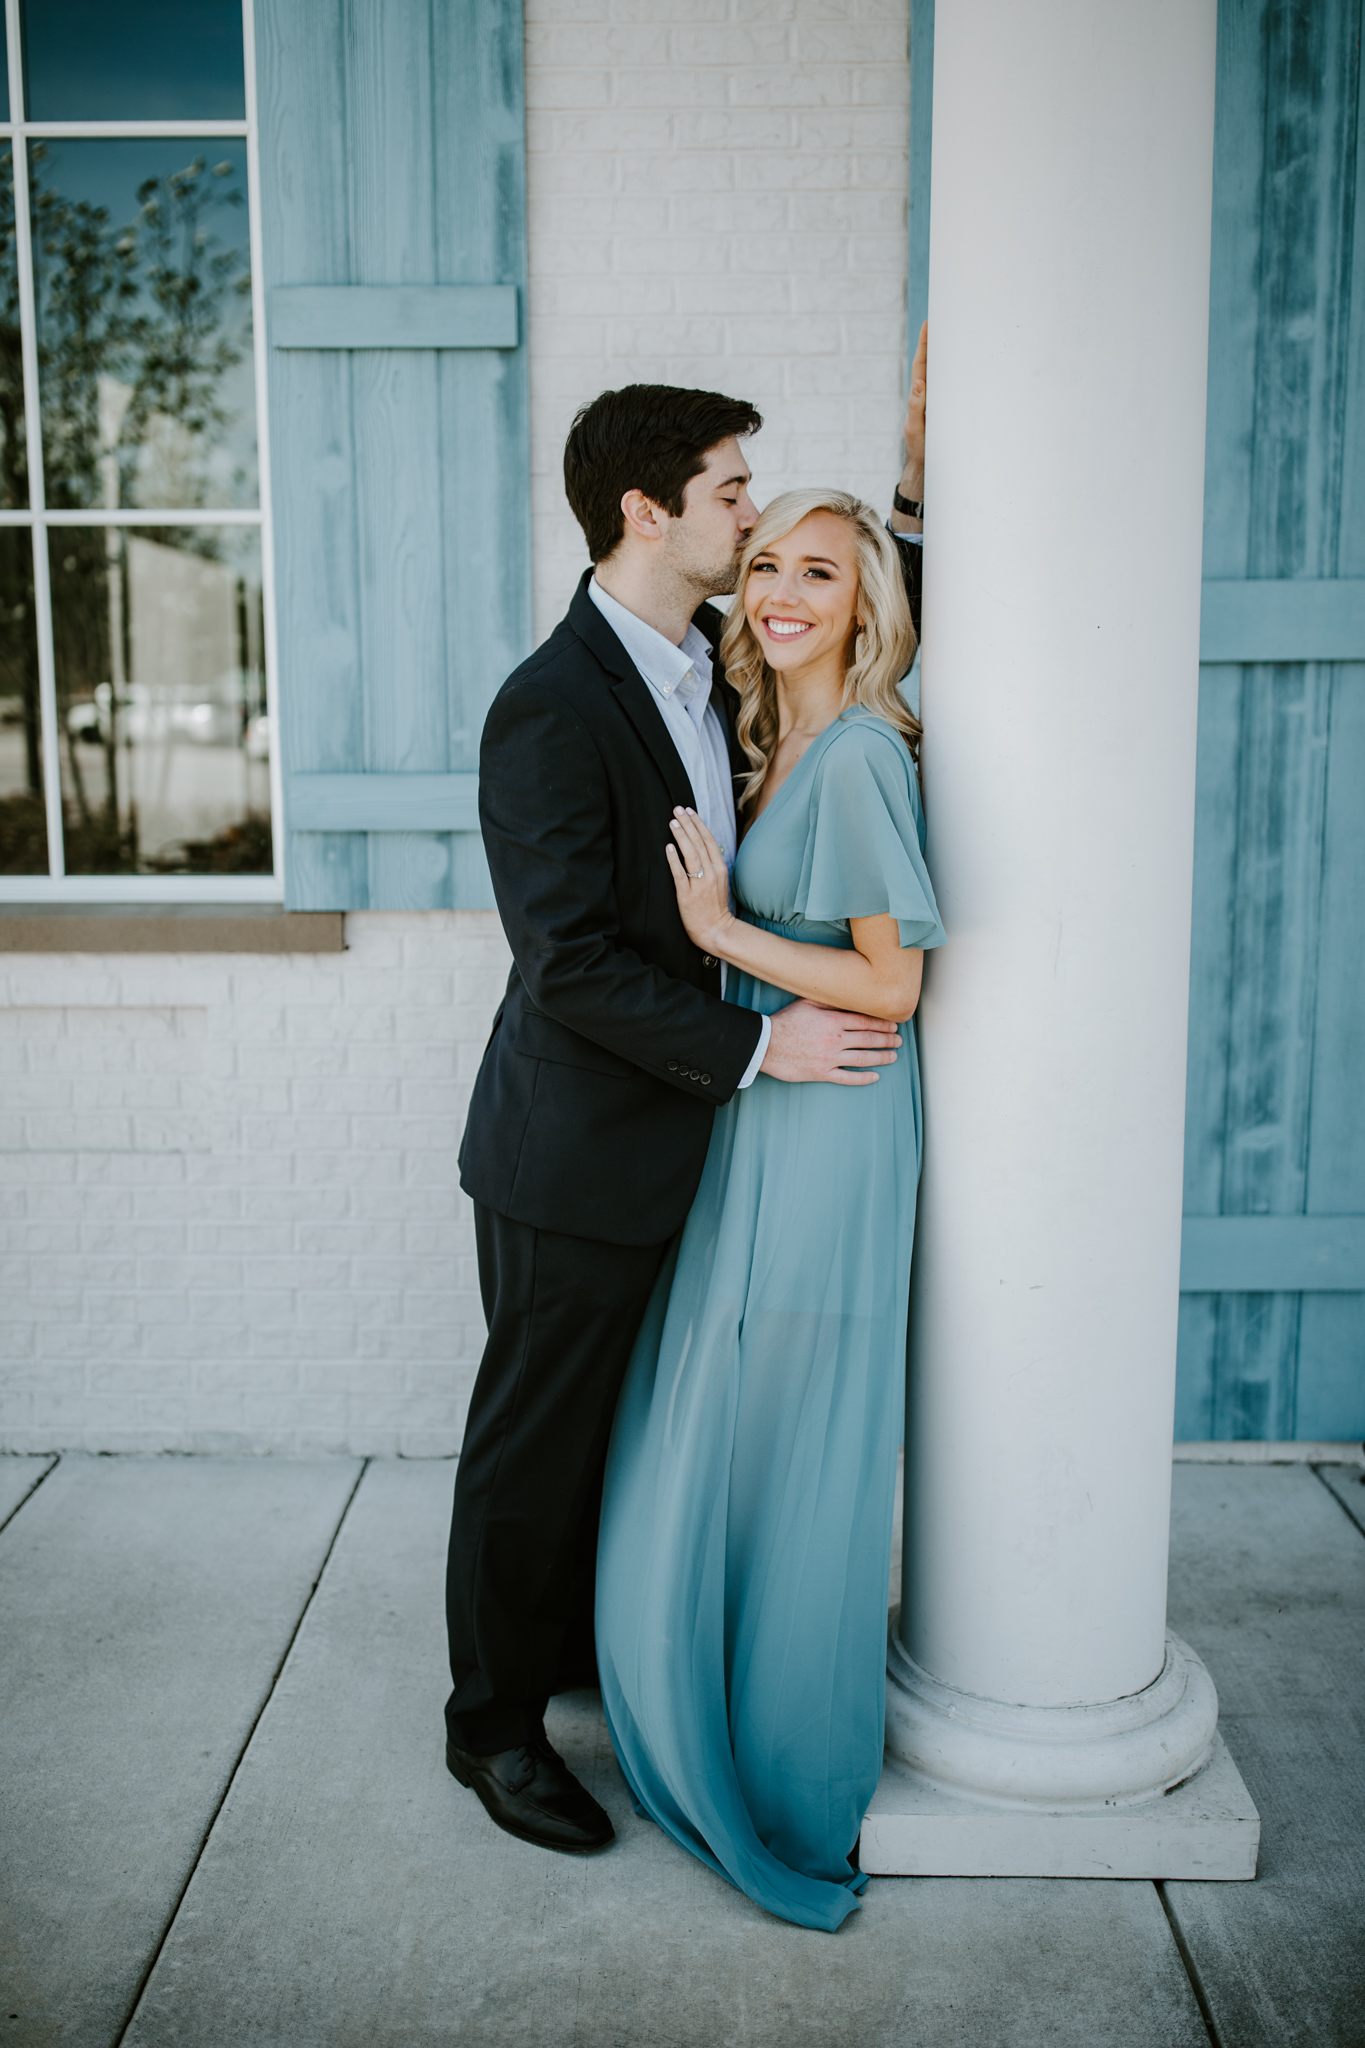 Ali-and-Jake-Chattanooga-Nashville-Tennessee-Wedding-Elopement-Photographer-82.jpg